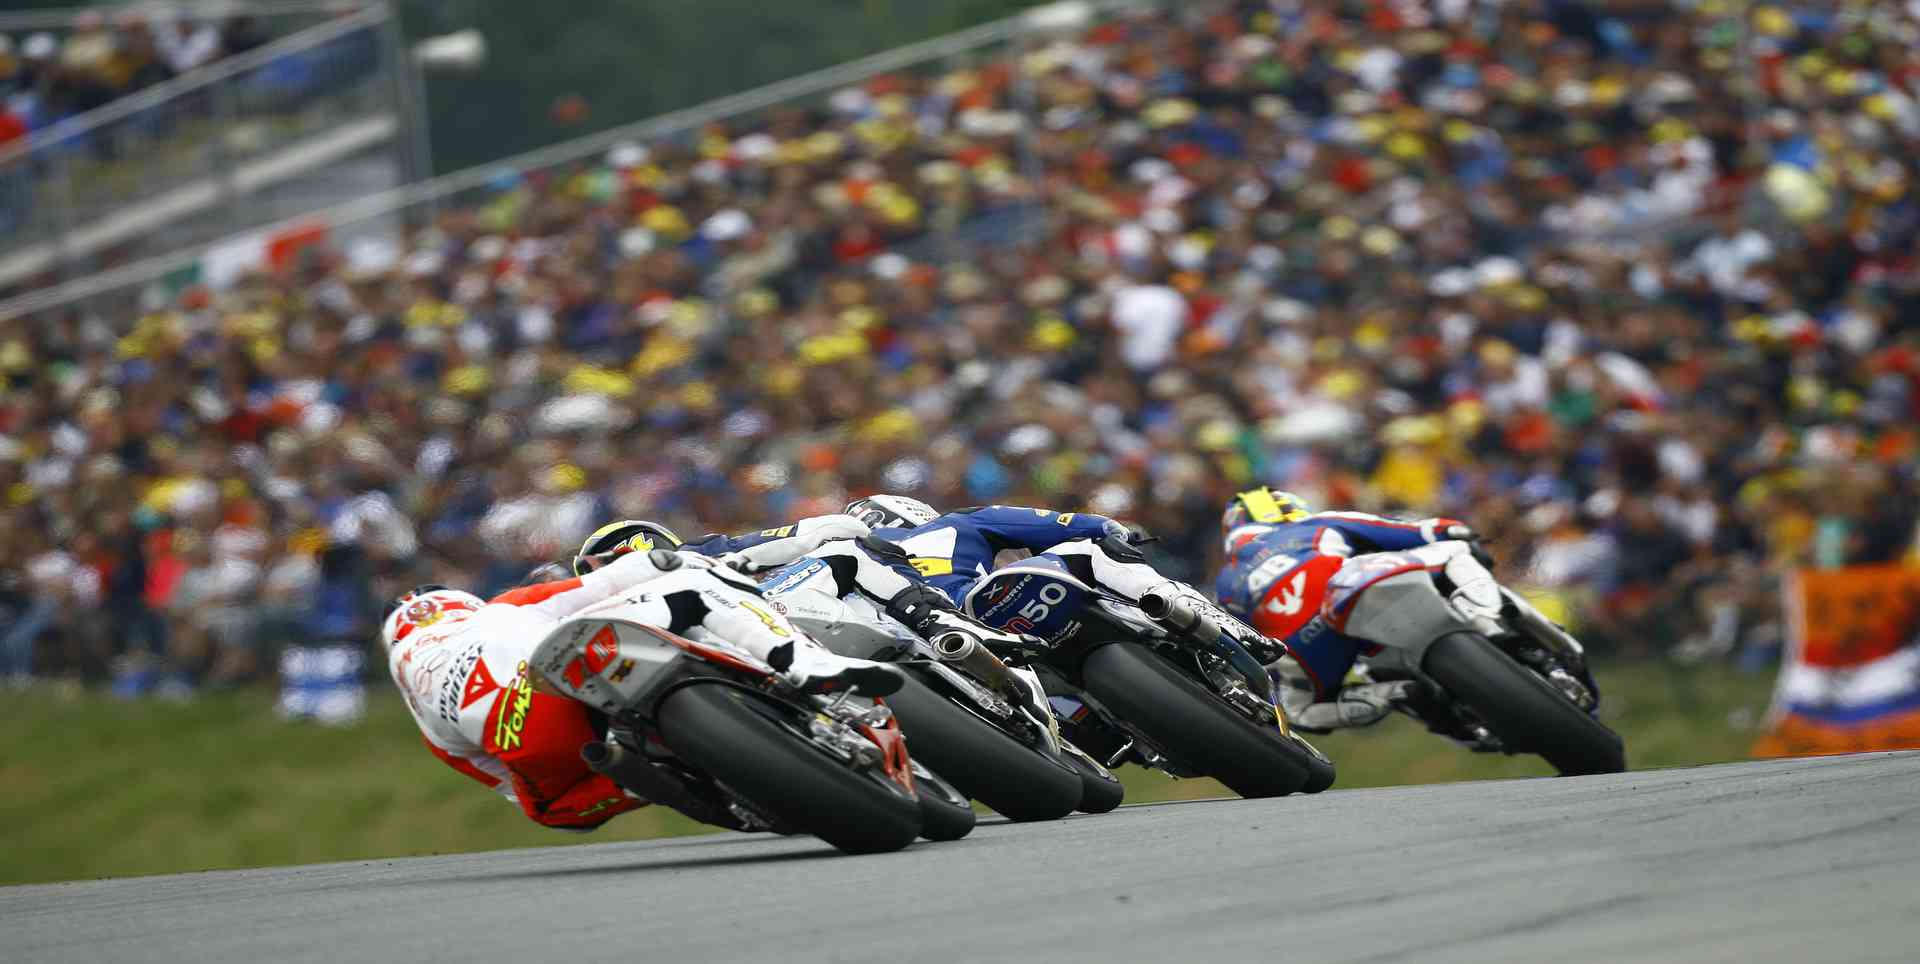 live-pirelli-french-round-superbike-hd